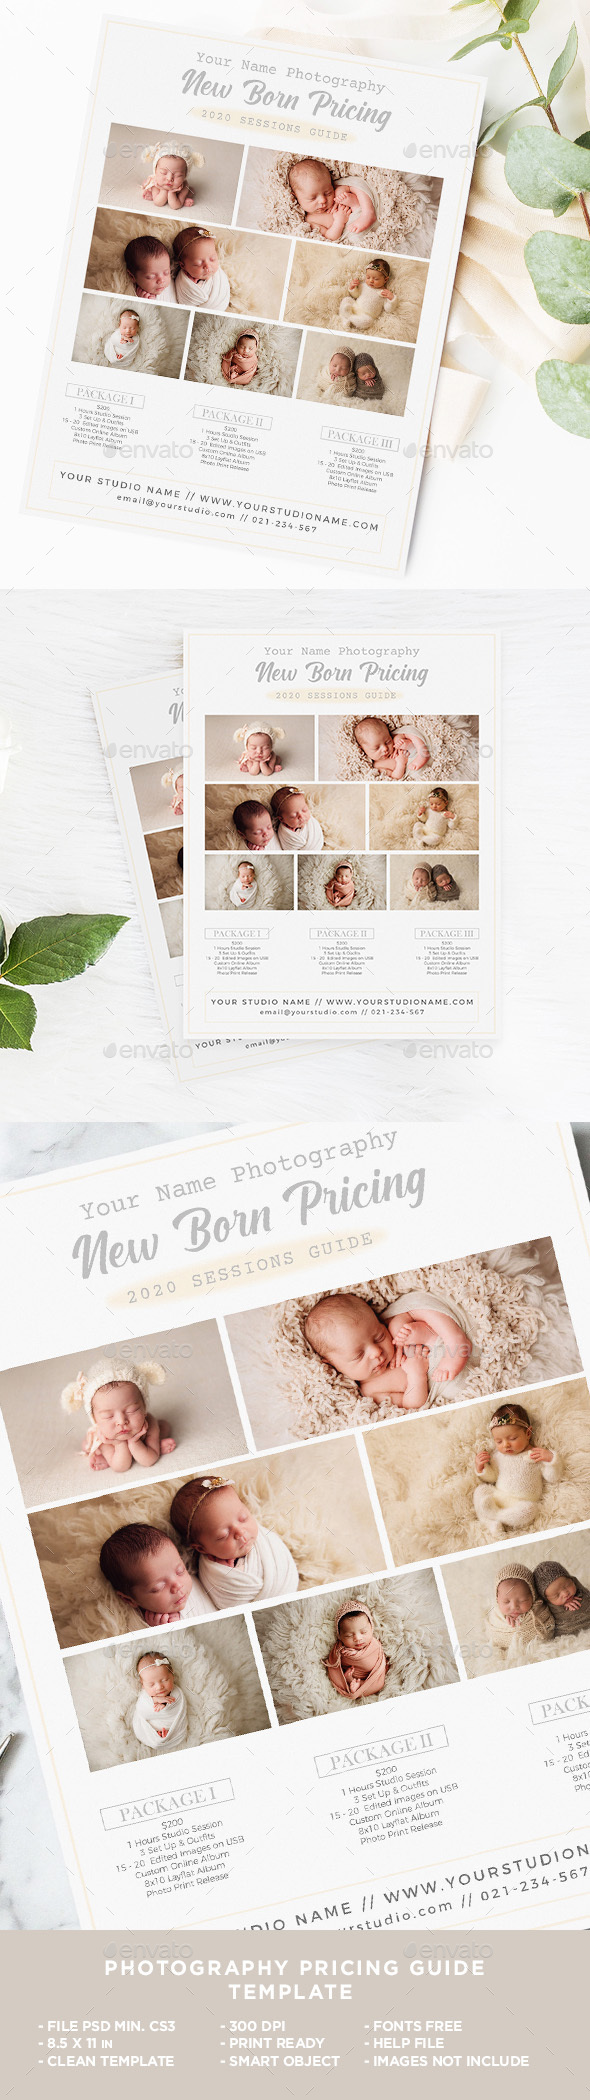 New Born Photography Business Flyer